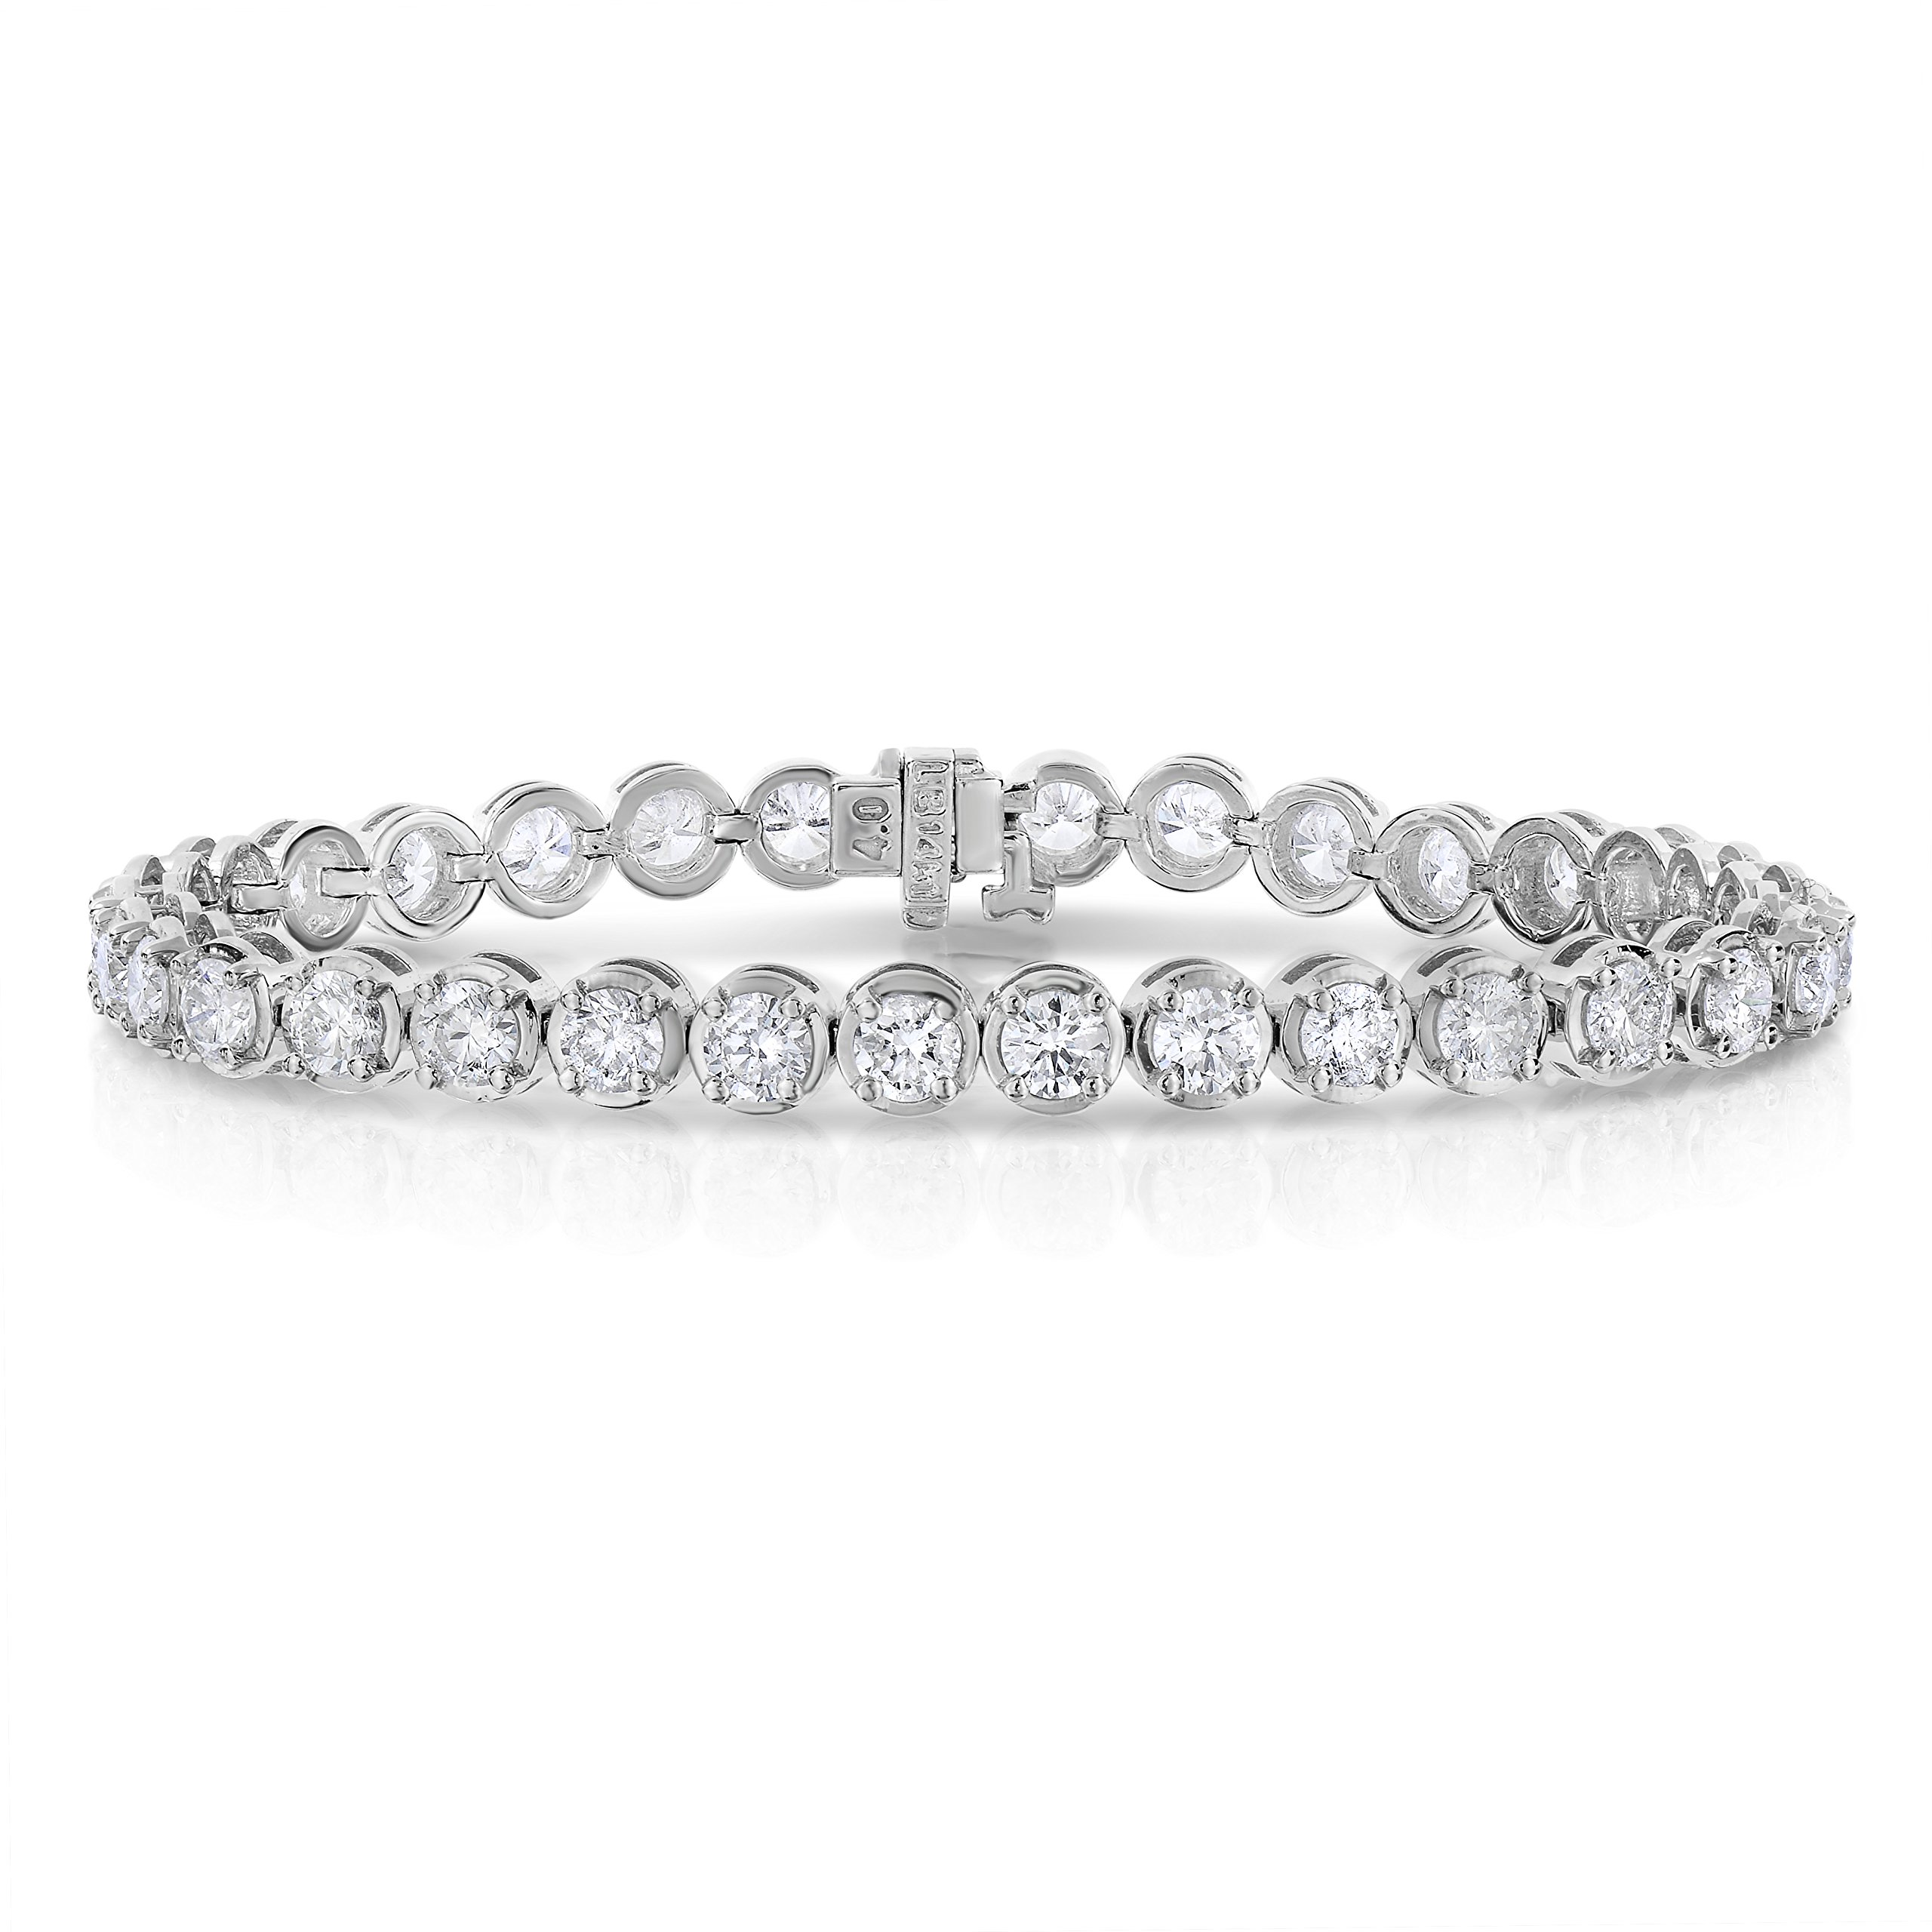 8 CT I1-I2 IGI Certified Diamond Bracelet Tennis 14K White Gold (H-I)